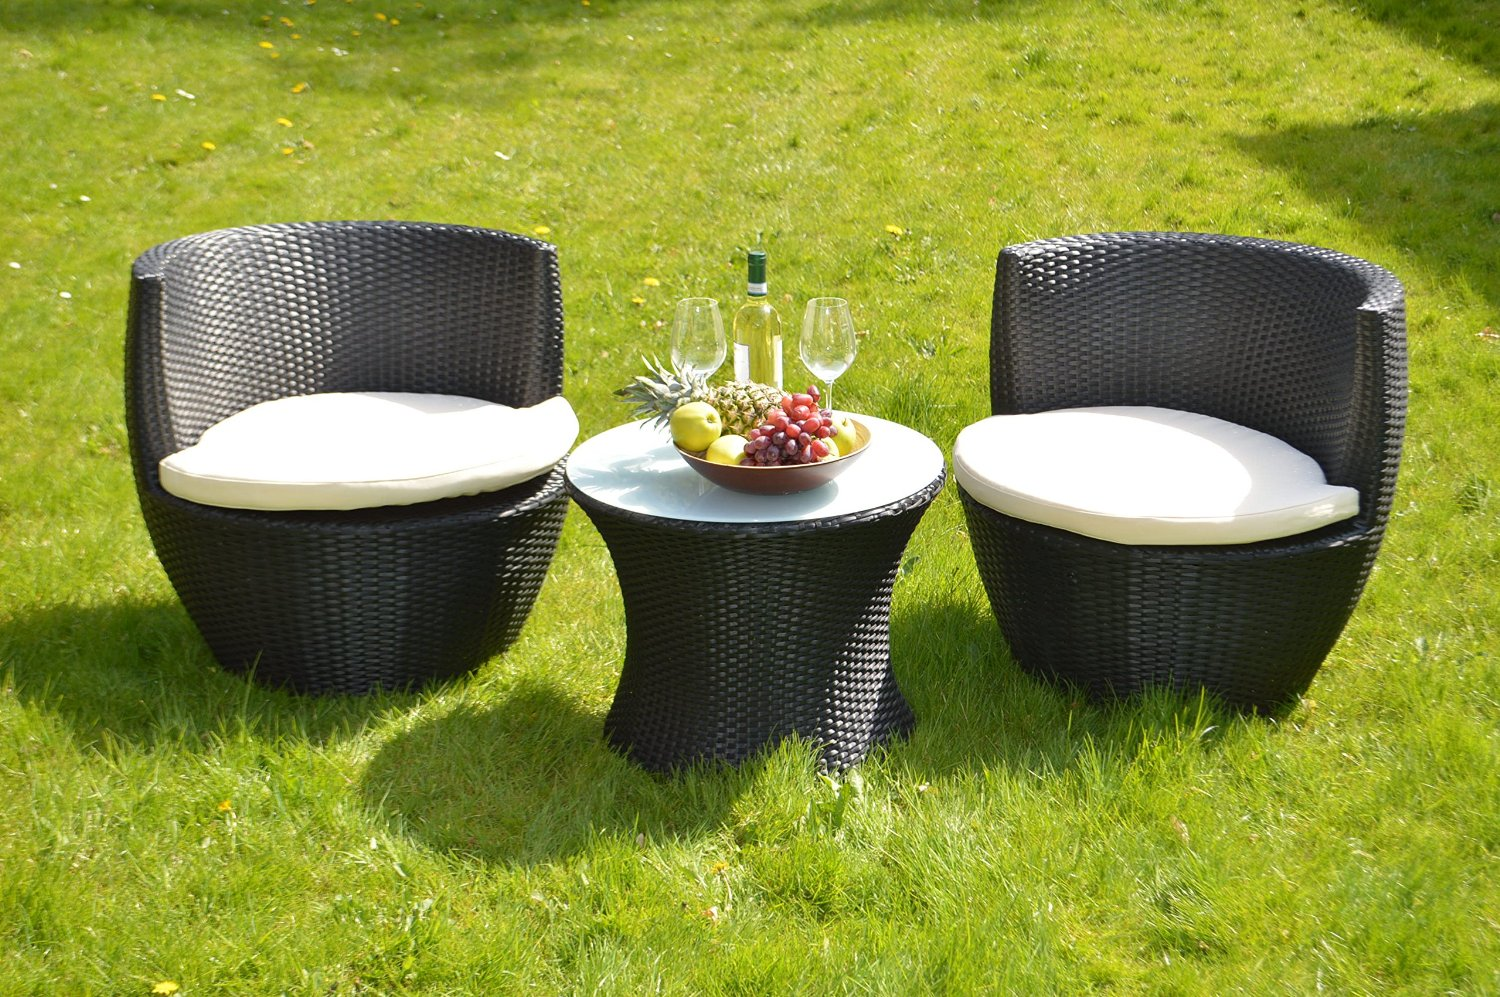 outdoor gartenmobel rattan eigenschaften. Black Bedroom Furniture Sets. Home Design Ideas